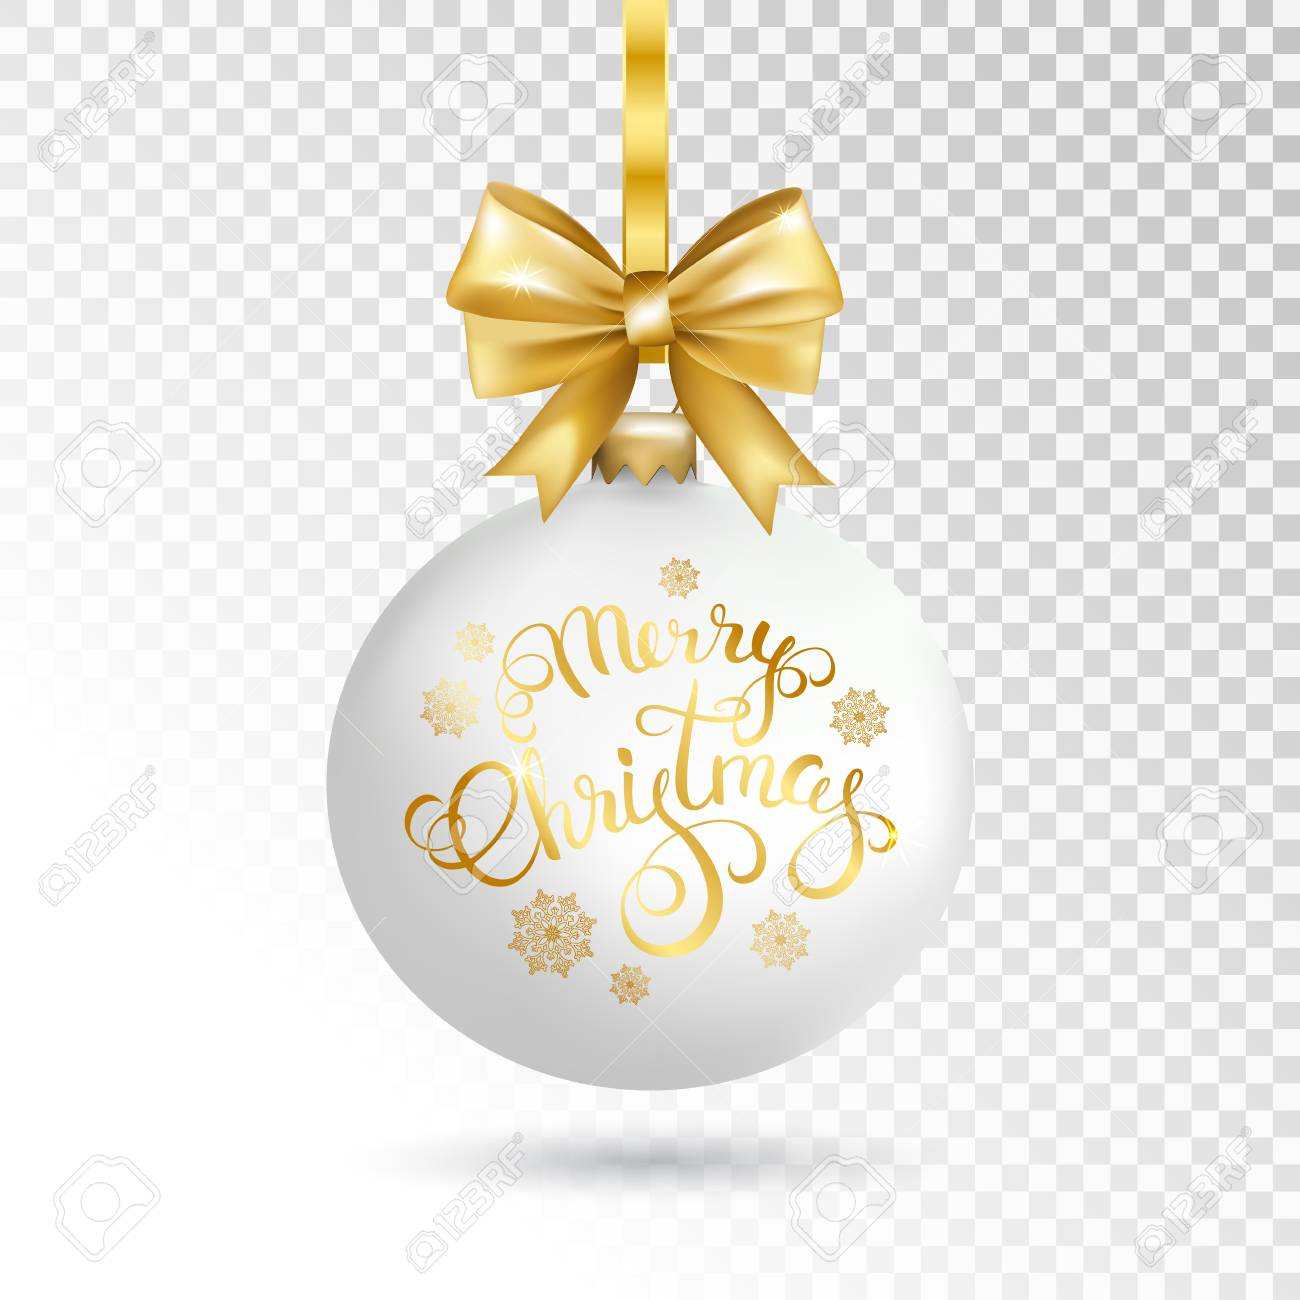 White Christmas Ball With Merry Christmas Calligraphy Isolated ...